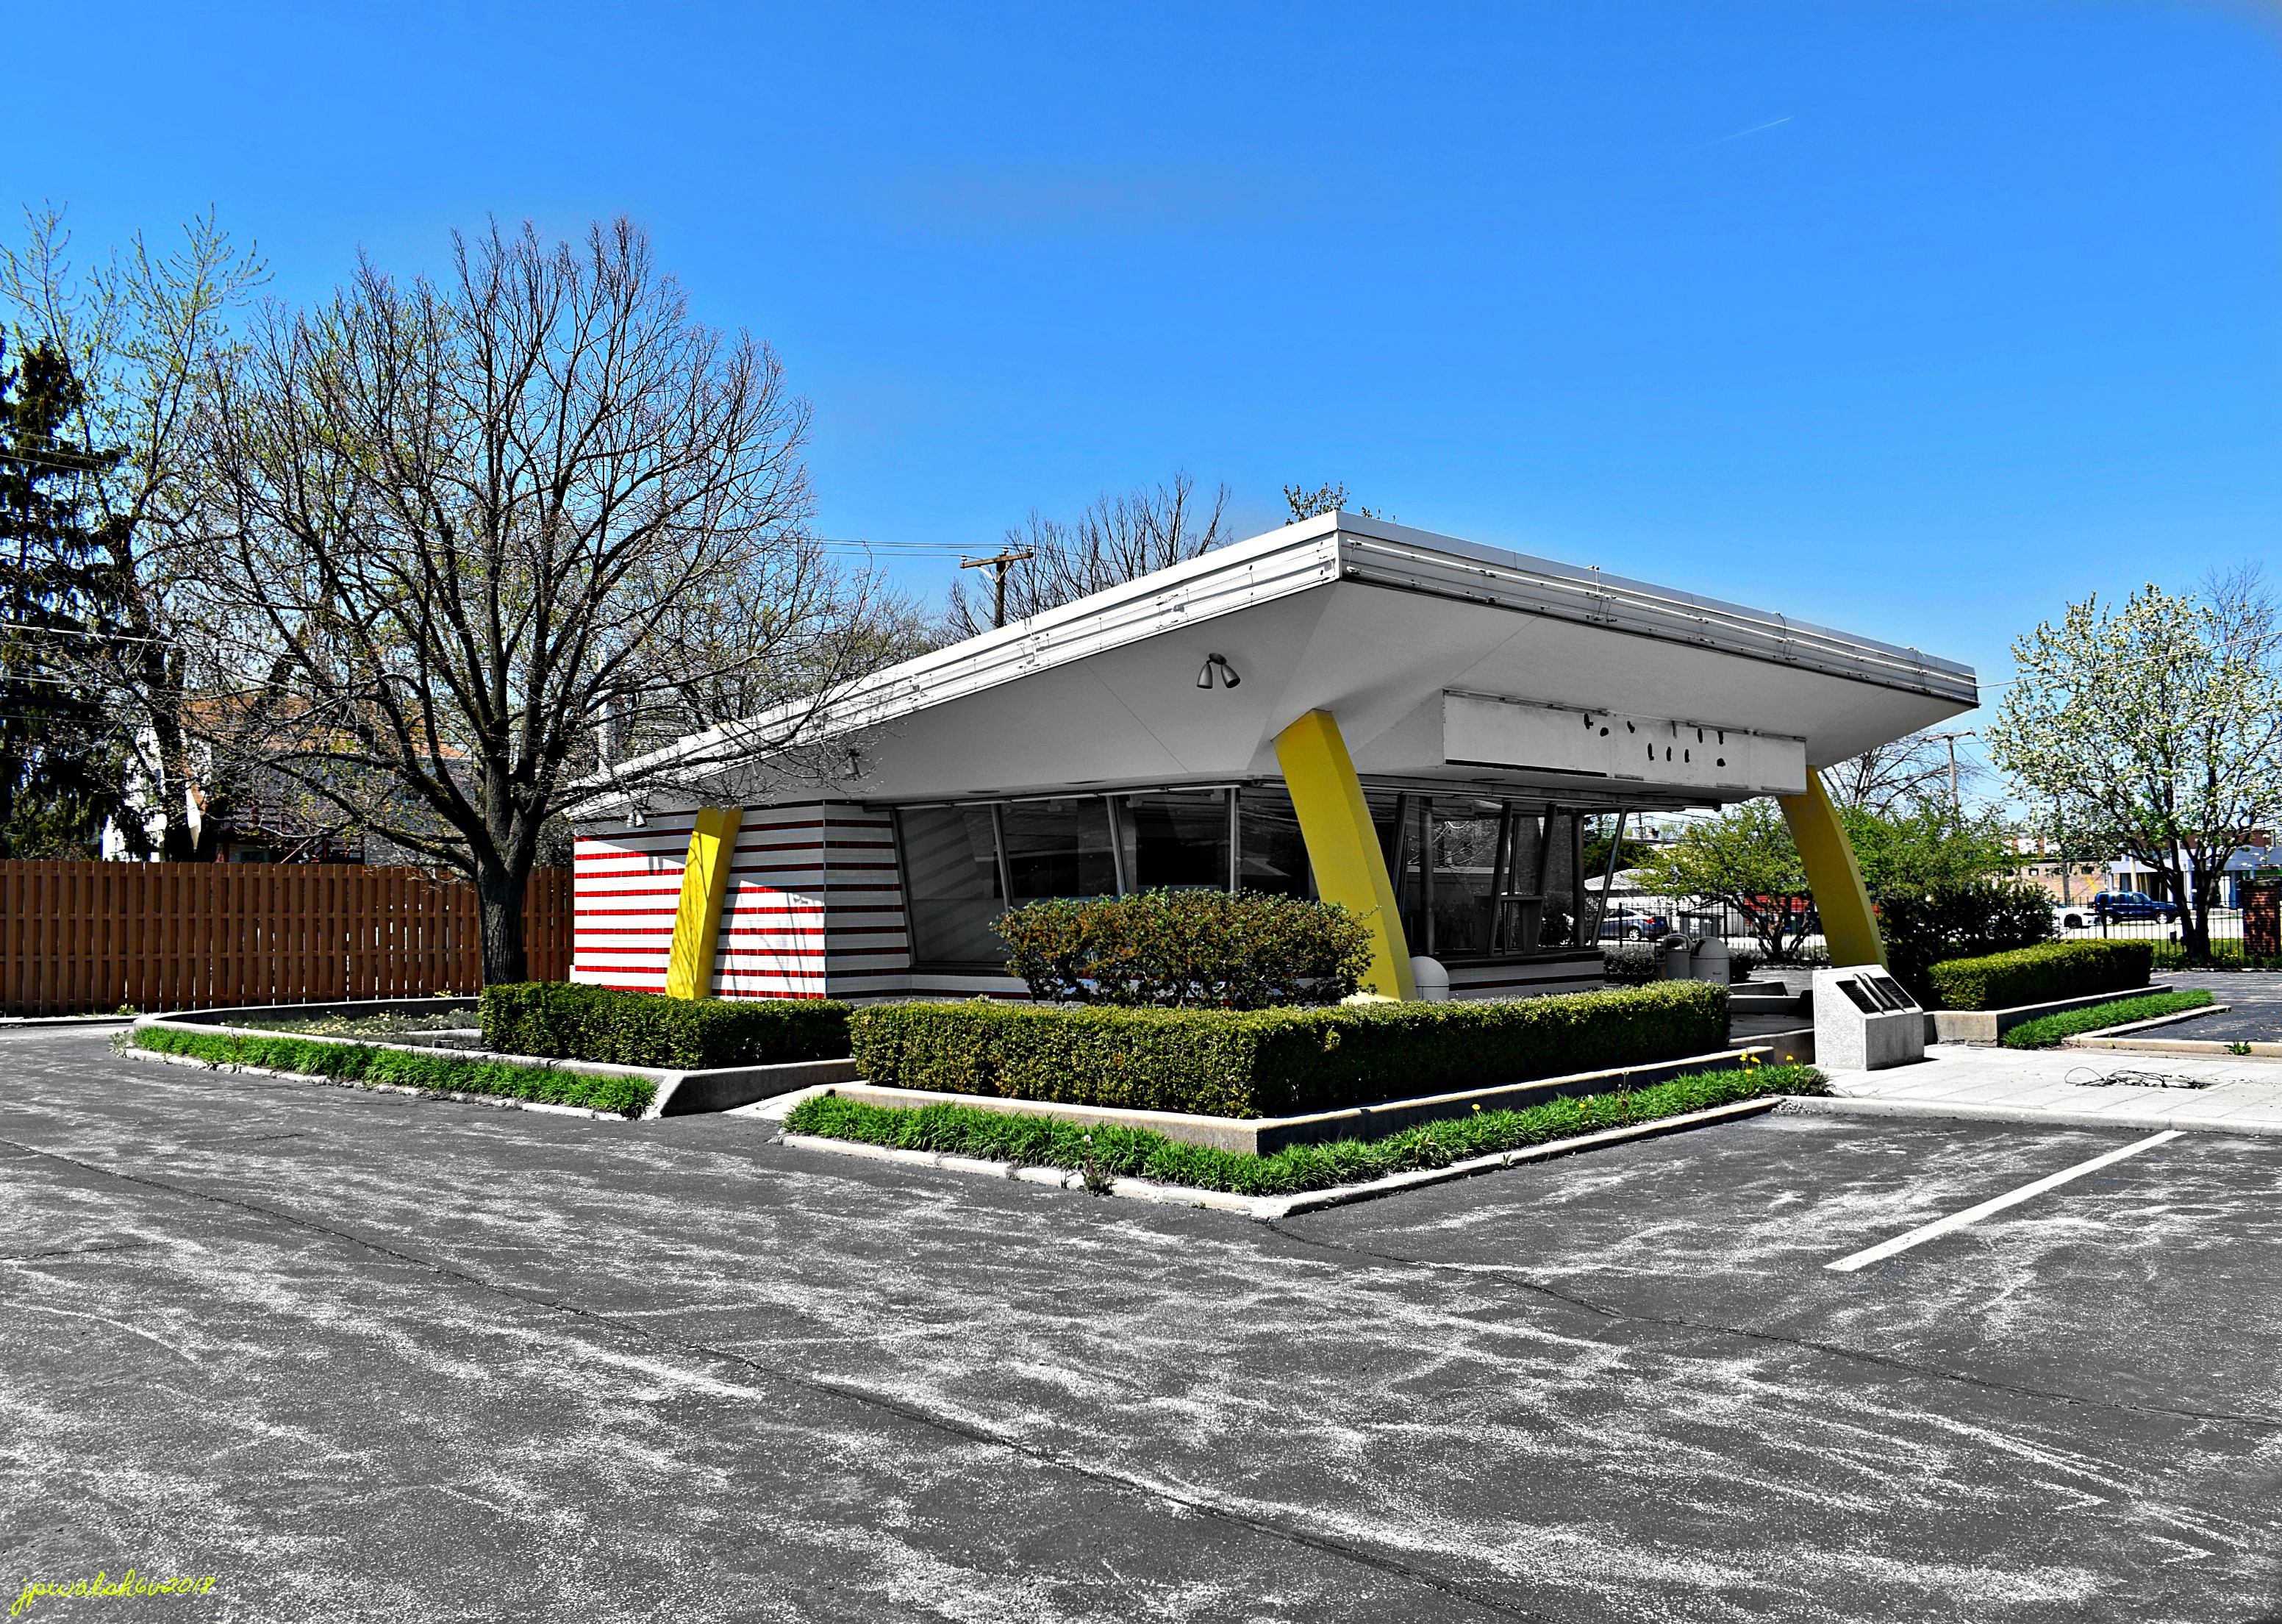 First McDonald's franchise restaurant, 1955, May 2018.